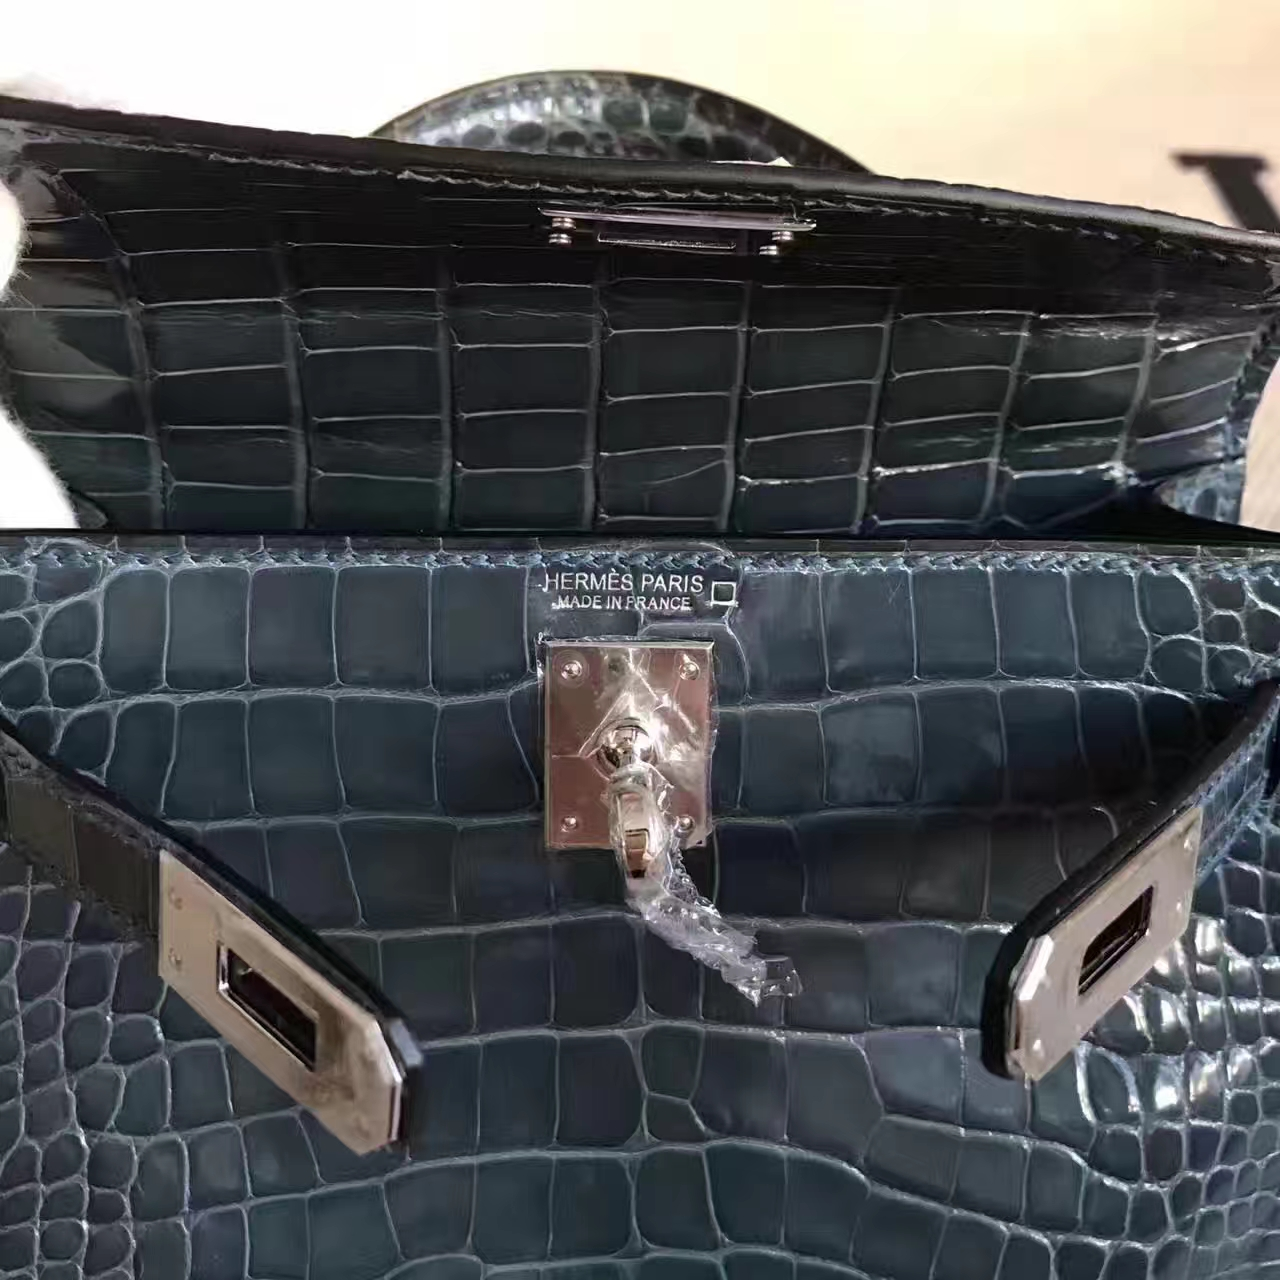 Sale Hermes 1P Duck Blue Shiny Alligator Crocodile Minikelly-2 Clutch Bag 19cm